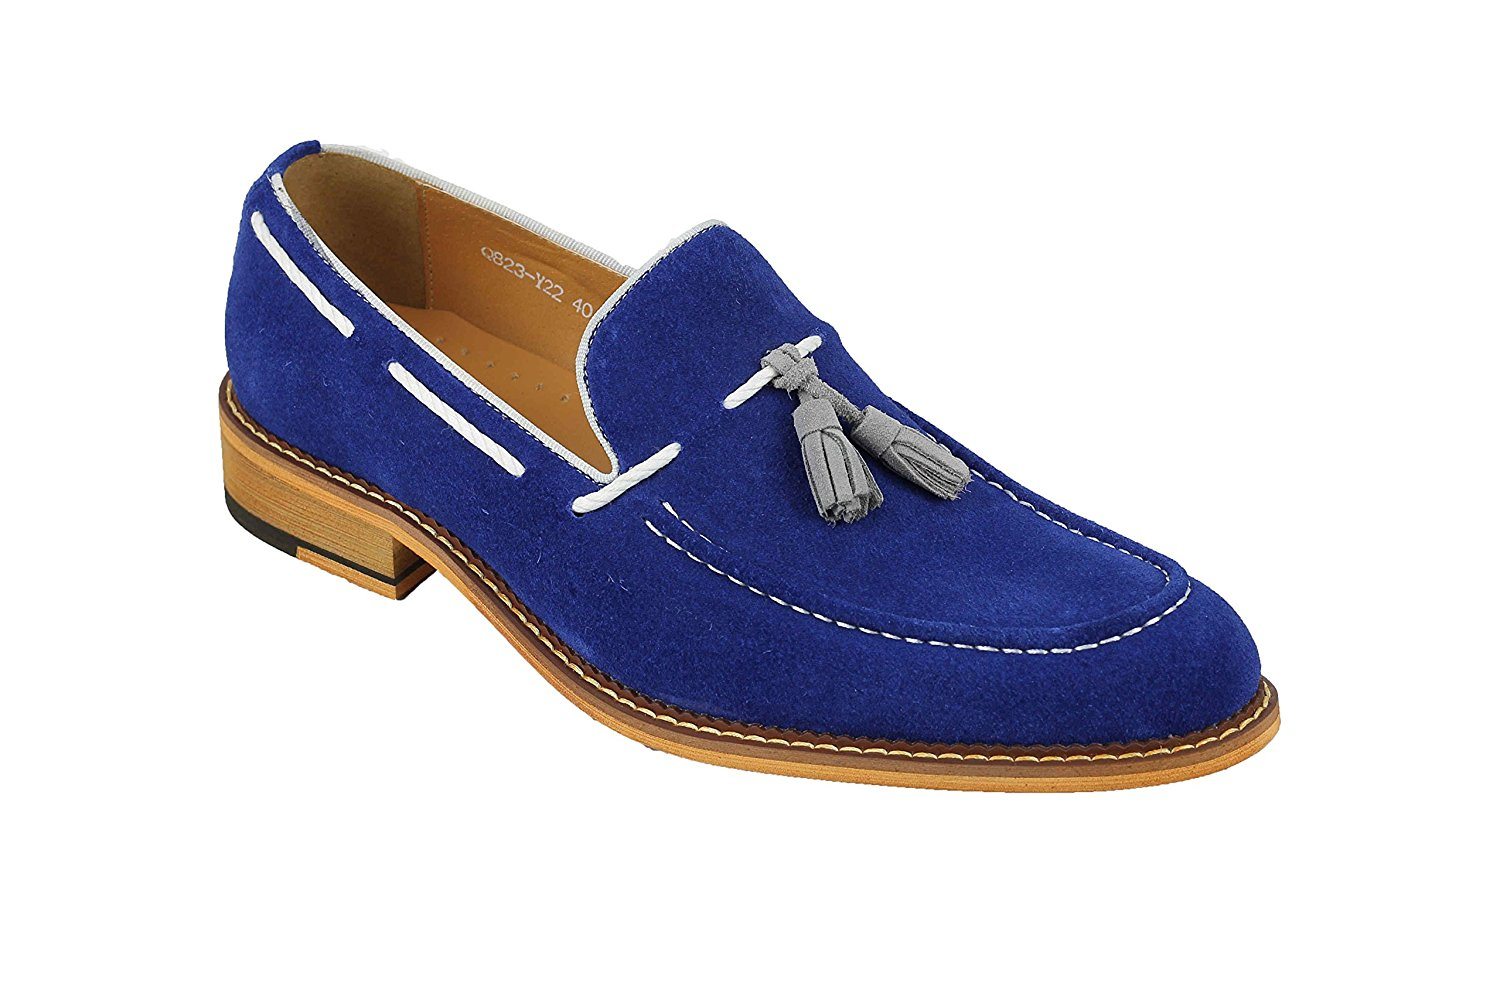 2237789925c78 Get Quotations · Xposed Mens Royal Blue Real Suede Leather Vintage White  Rope Tassel Loafers Slip On Shoes